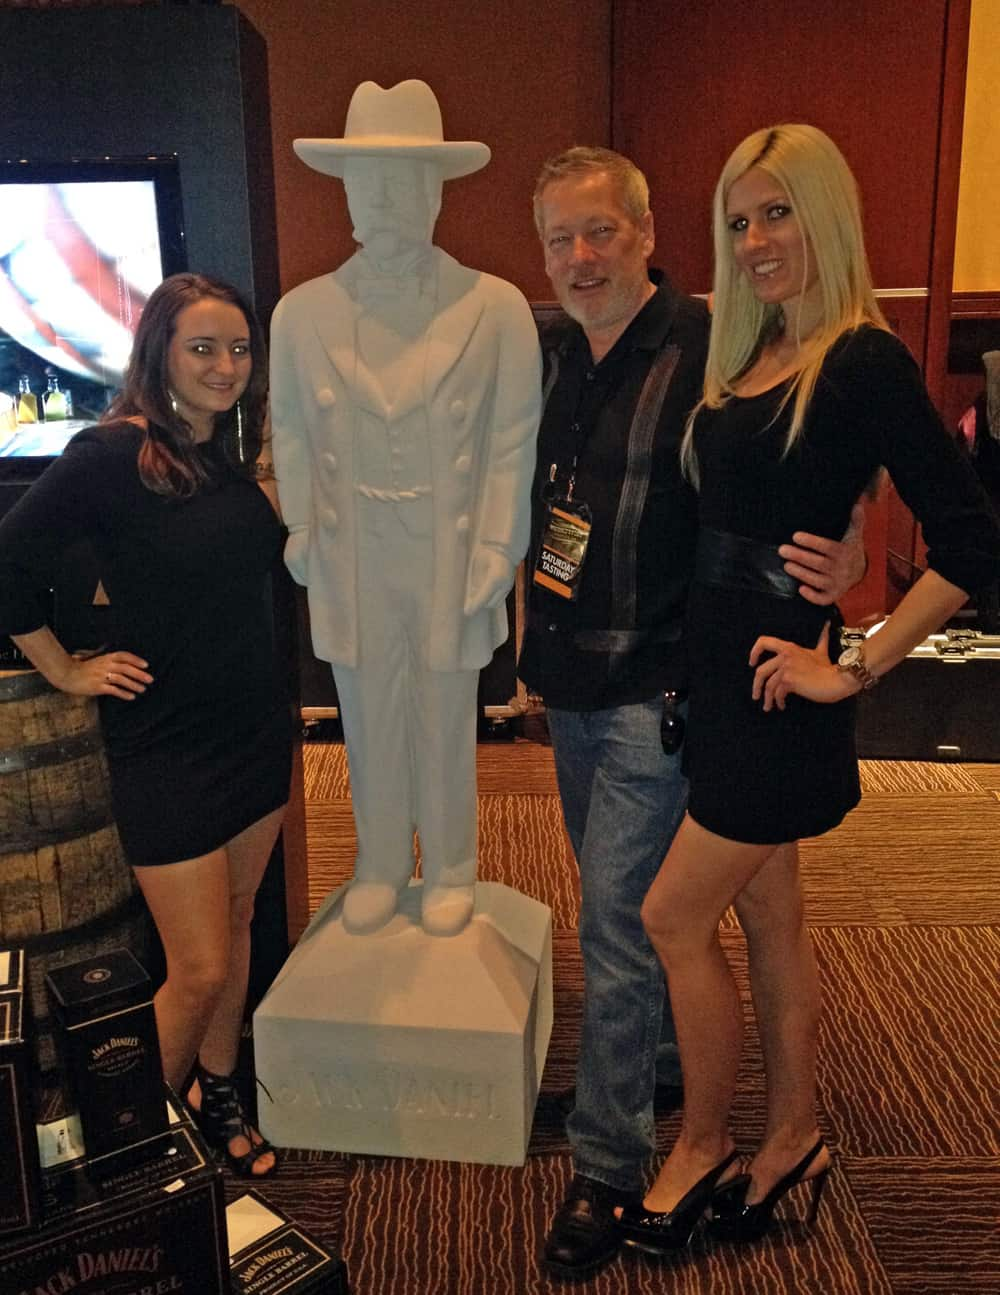 WhiskeyFest 2014 - Jack Daniels Ladies, Las Vegas, NV.